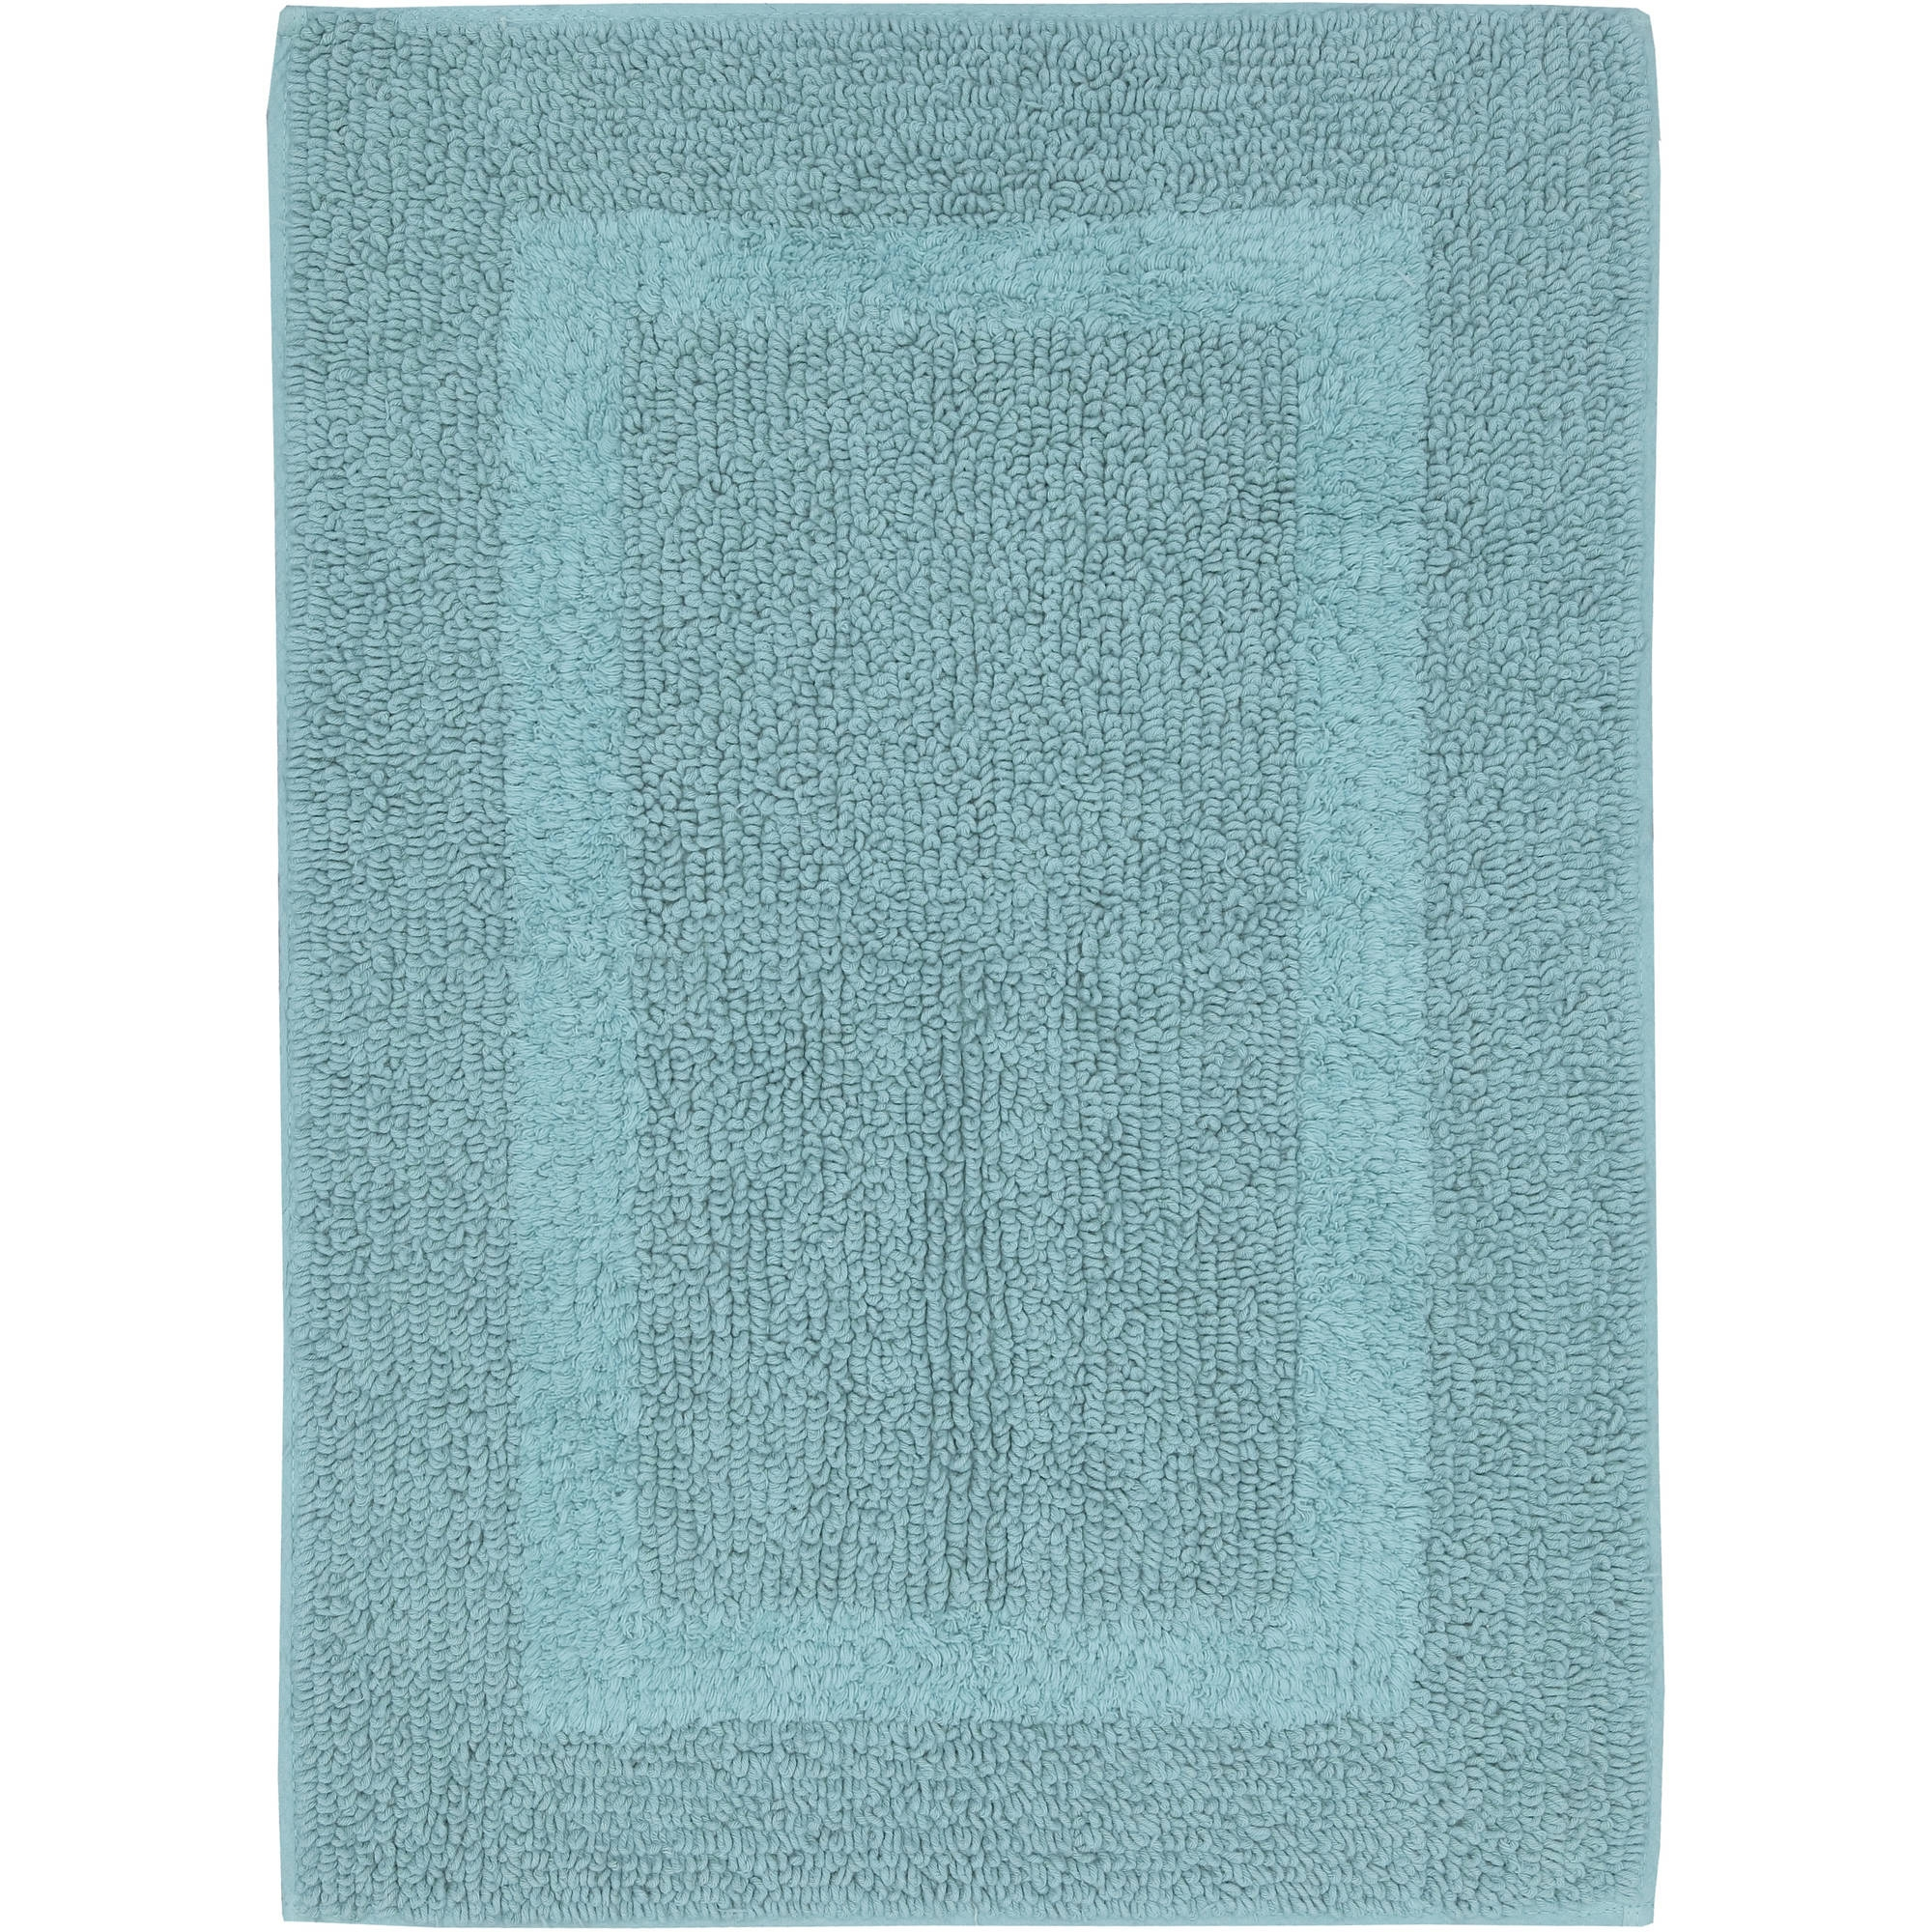 Mohawk Bath Rugs Spa Collection